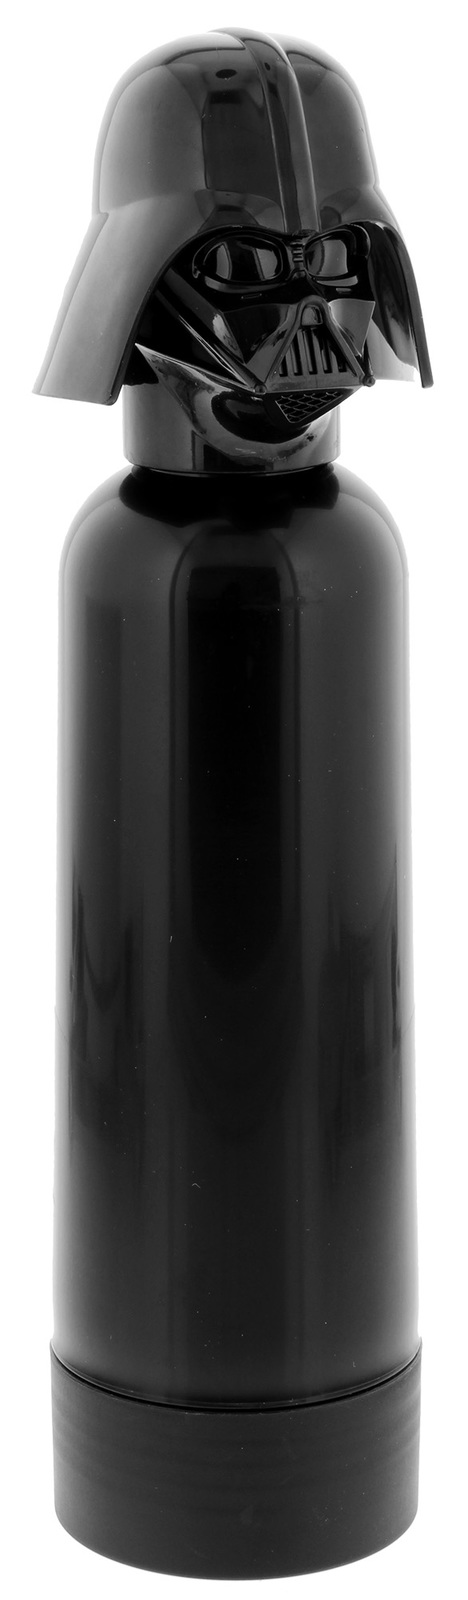 Star Wars: Darth Vader - Drink Bottle image